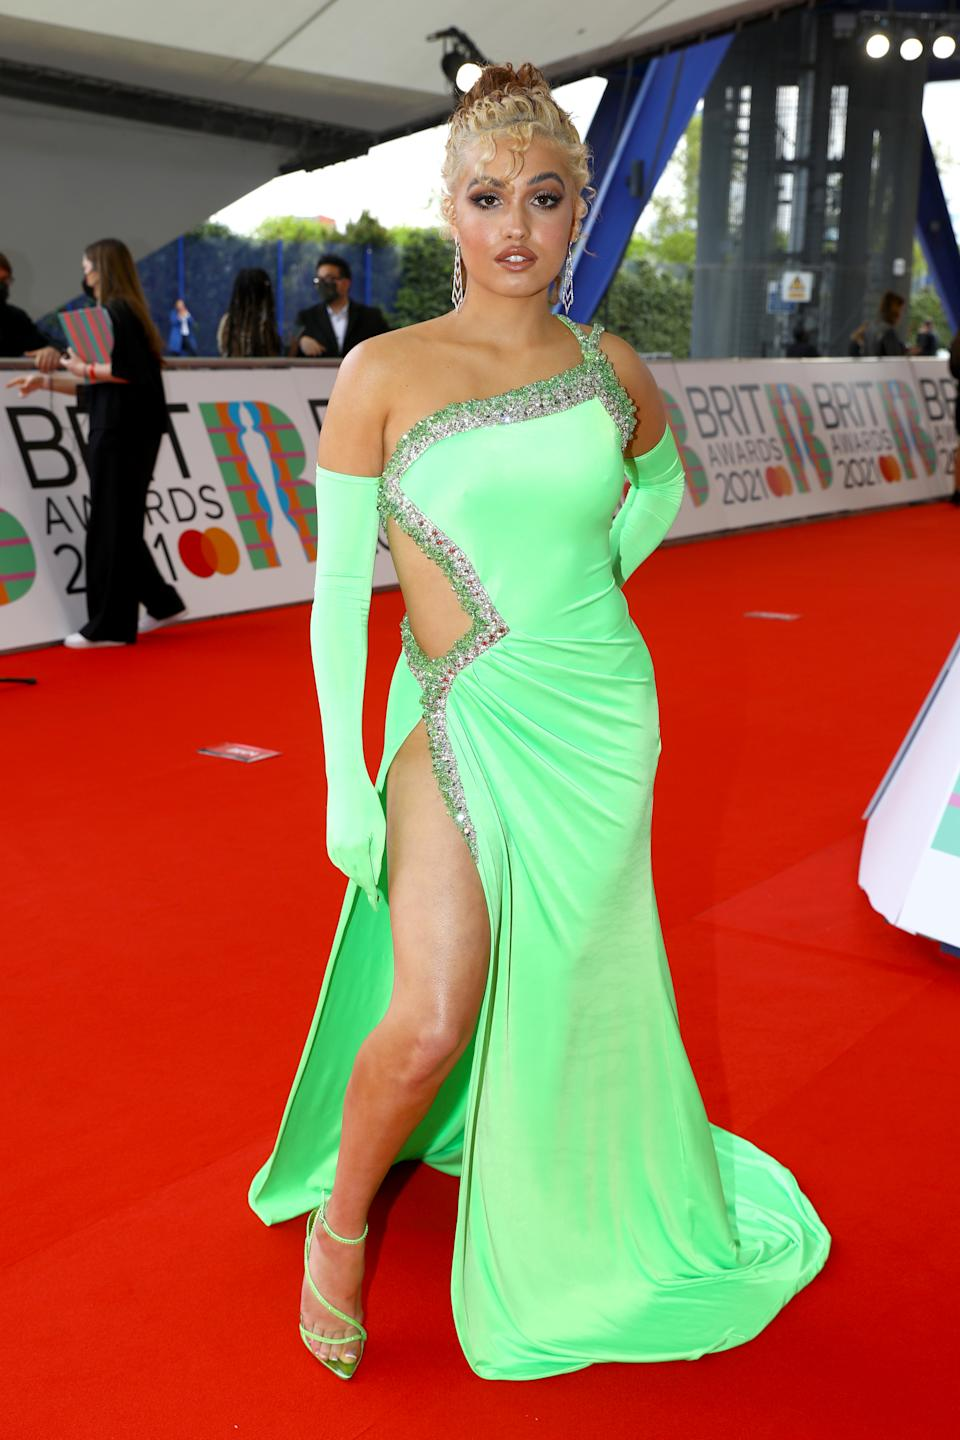 Mabel arrives at The BRIT Awards 2021 at The O2 Arena on May 11, 2021 in London, England